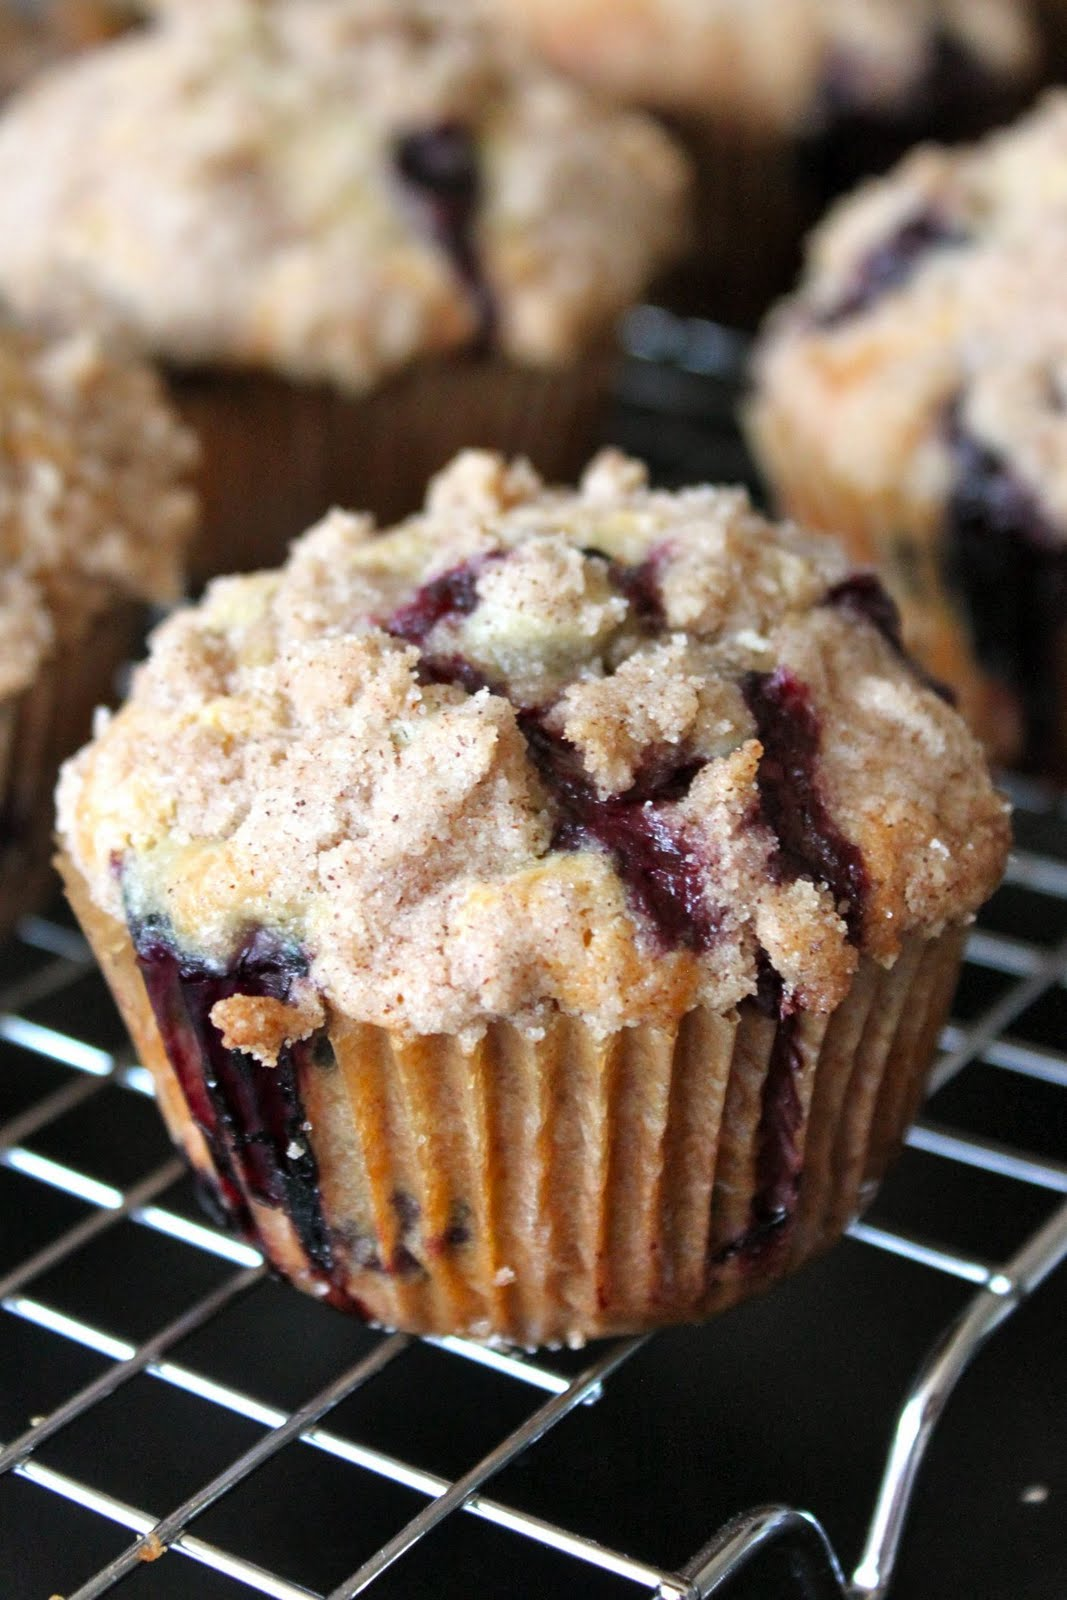 Baked Perfection: Farm Fresh Bakery Style Blueberry Muffins